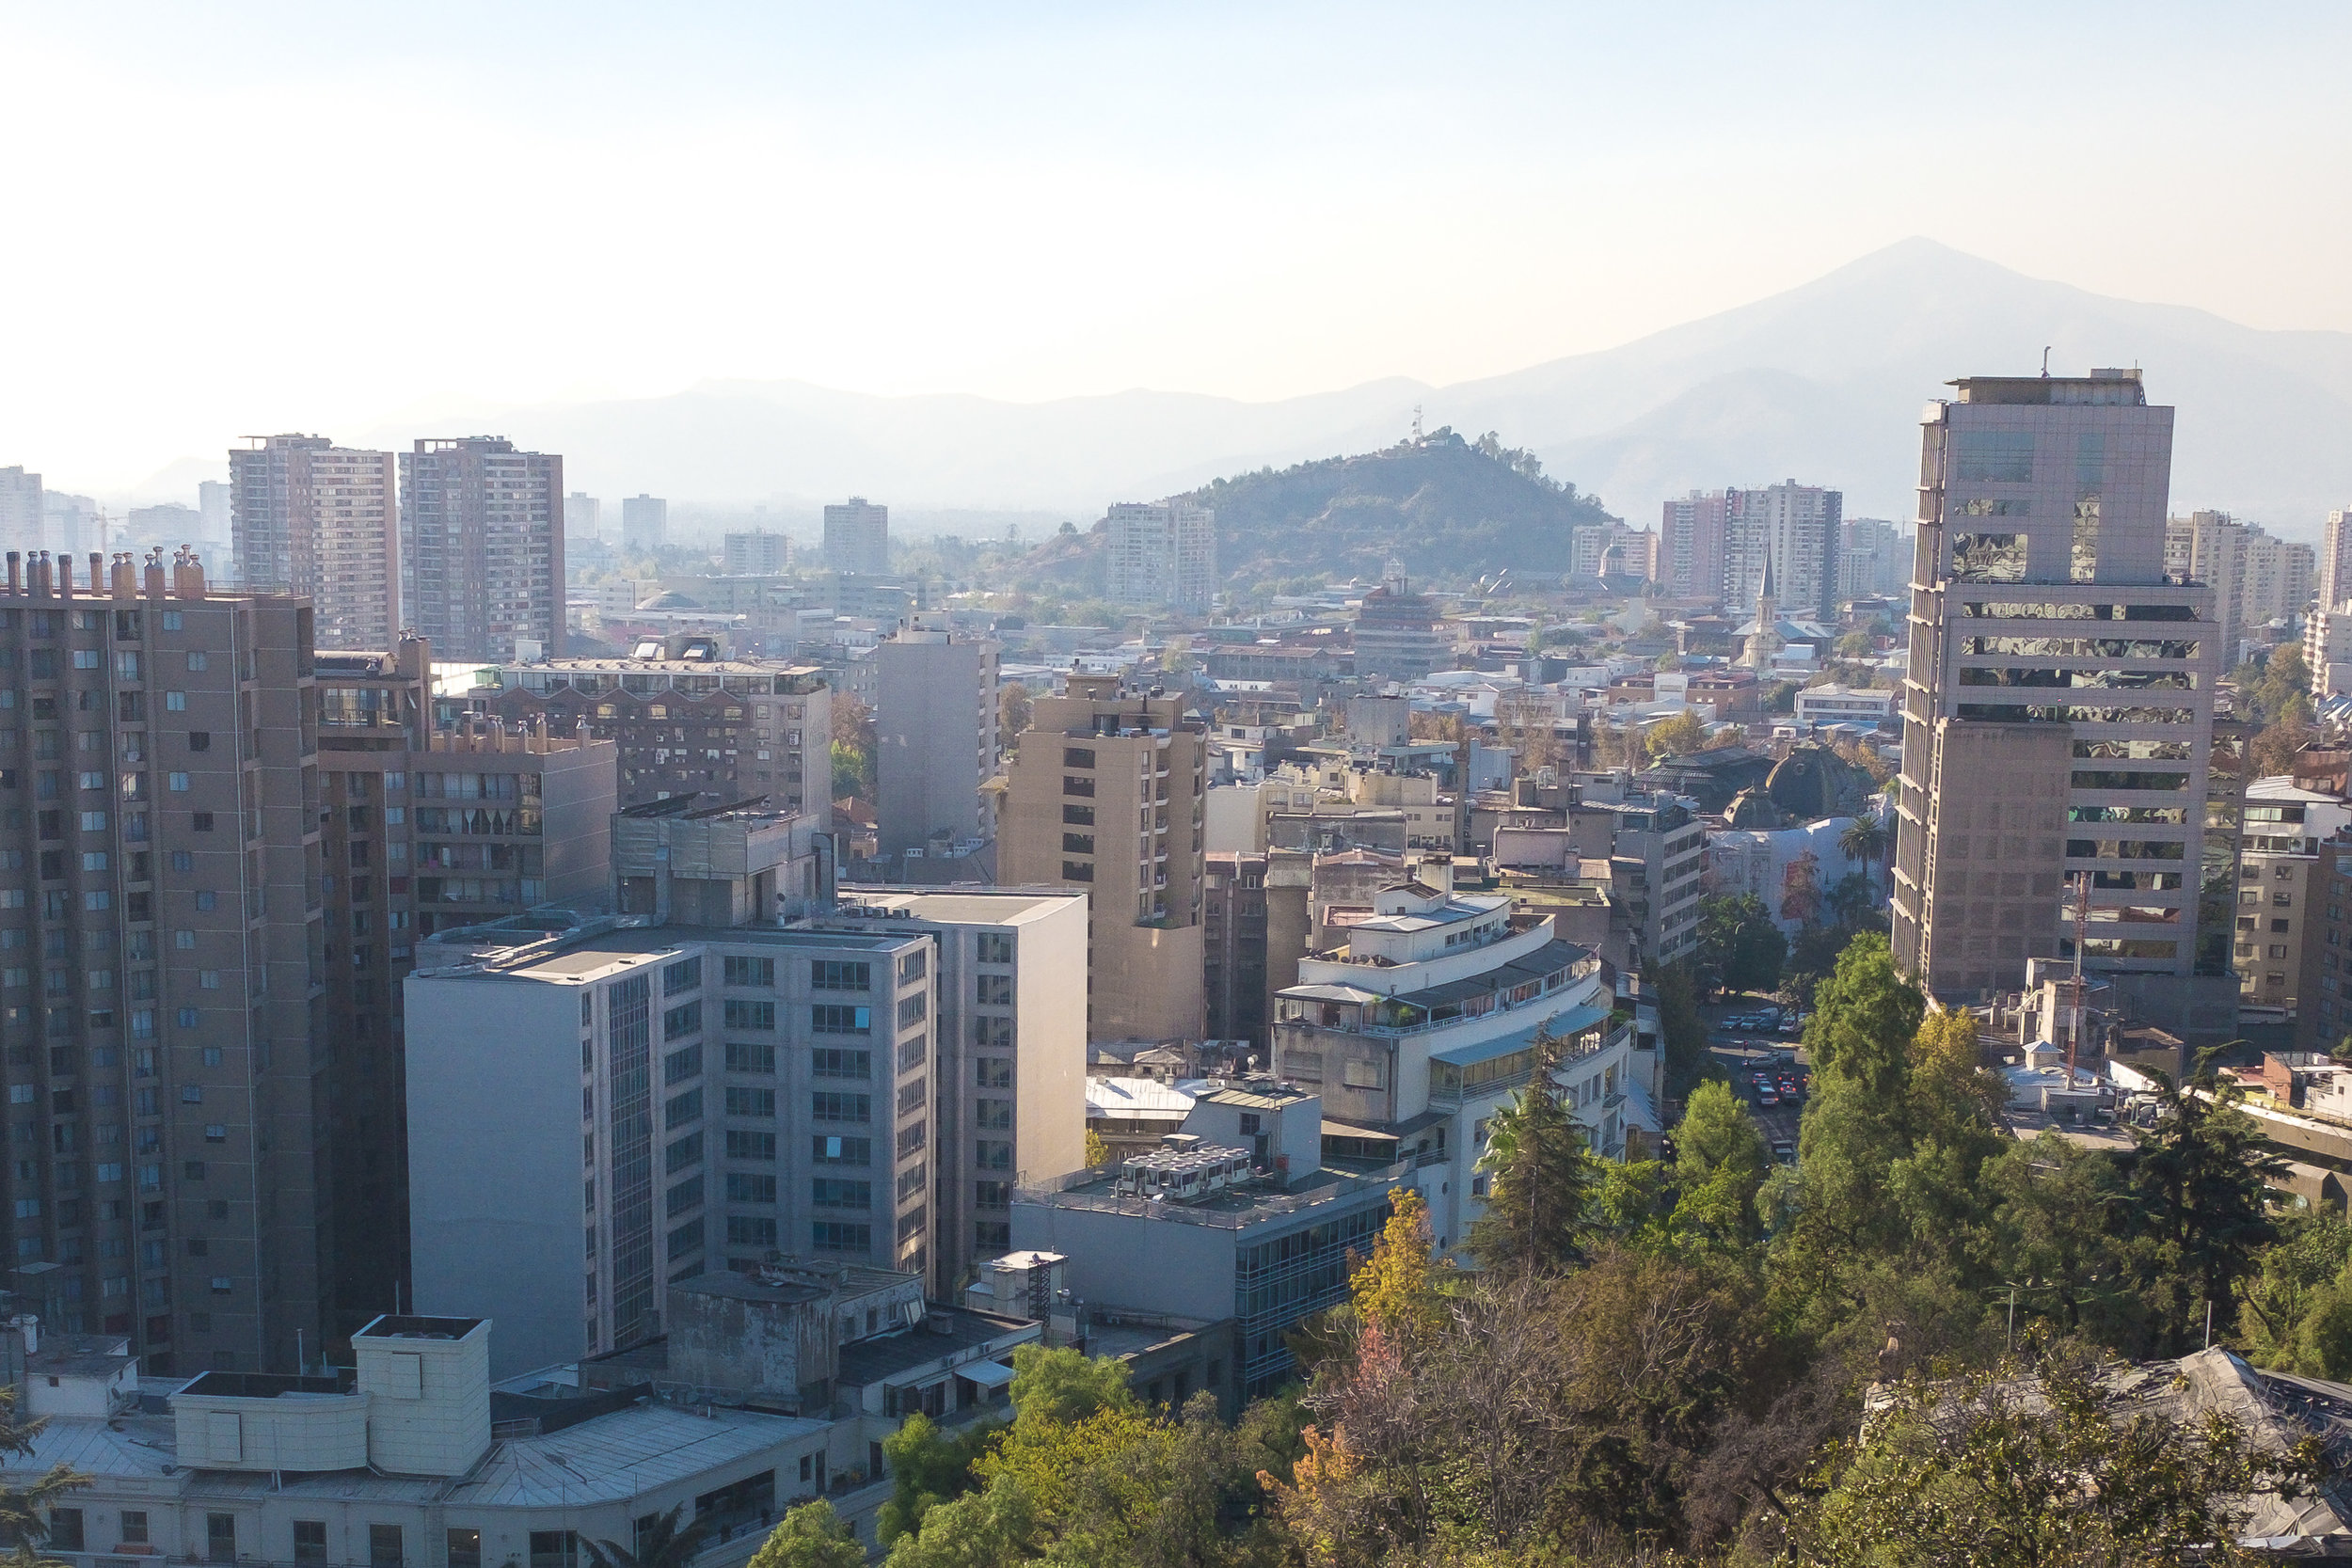 R&R guide to Santiago - May 29th, 2017